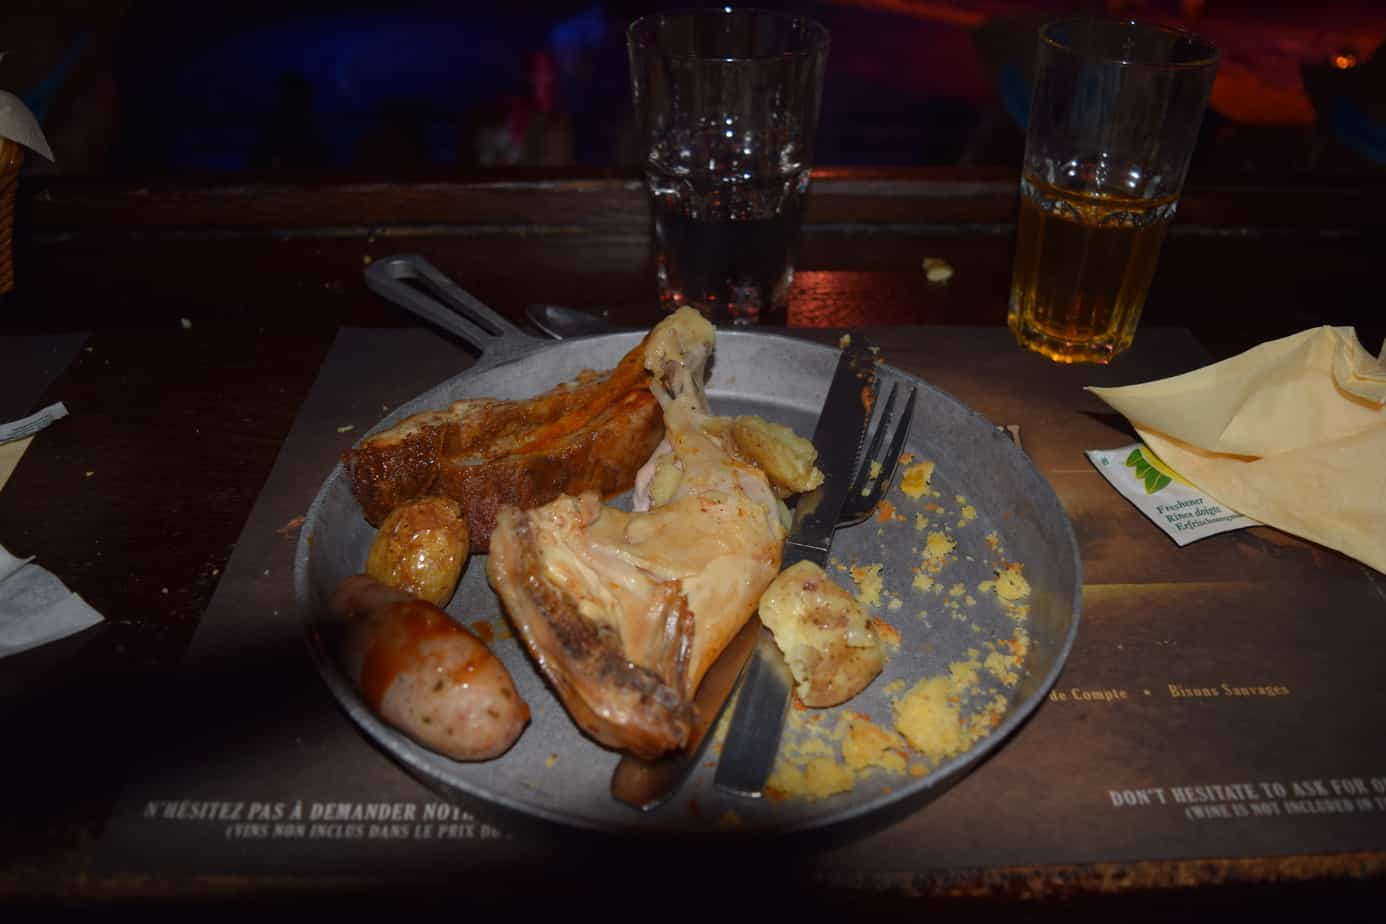 The Texas Skillet provided at the Wild west show